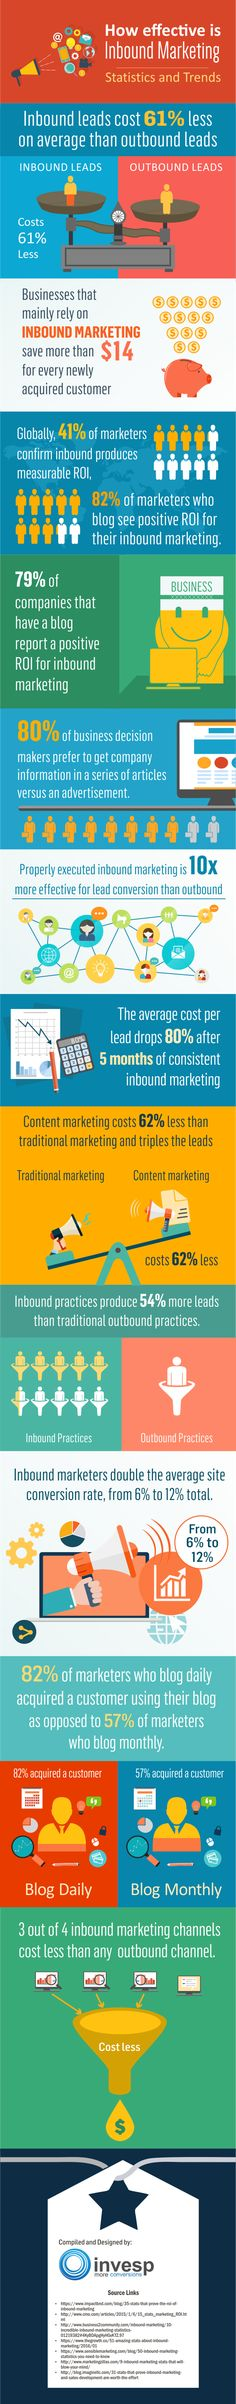 Why Inbound Marketing is Your Holy Grail of Marketing: Statistics and Trends [Infographic]